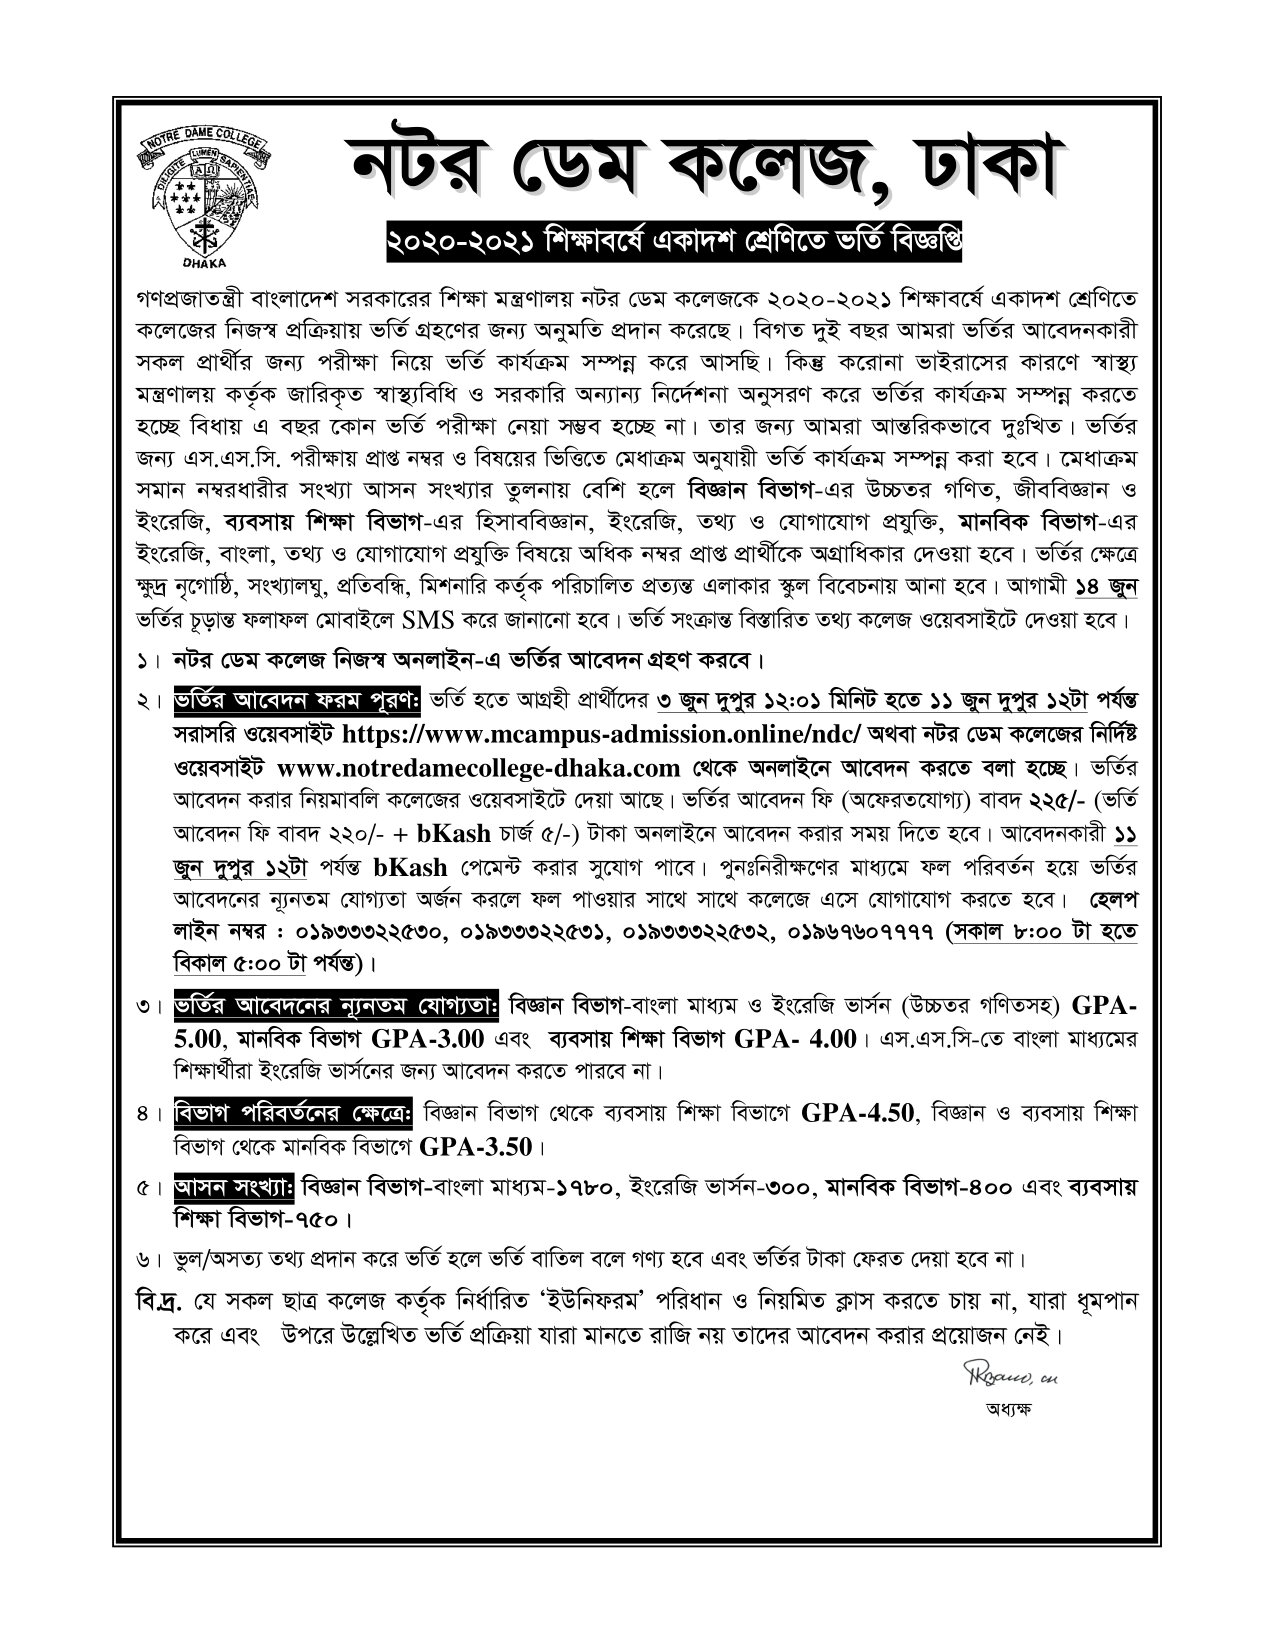 Notre Dame College NDC Admission Circular 2020